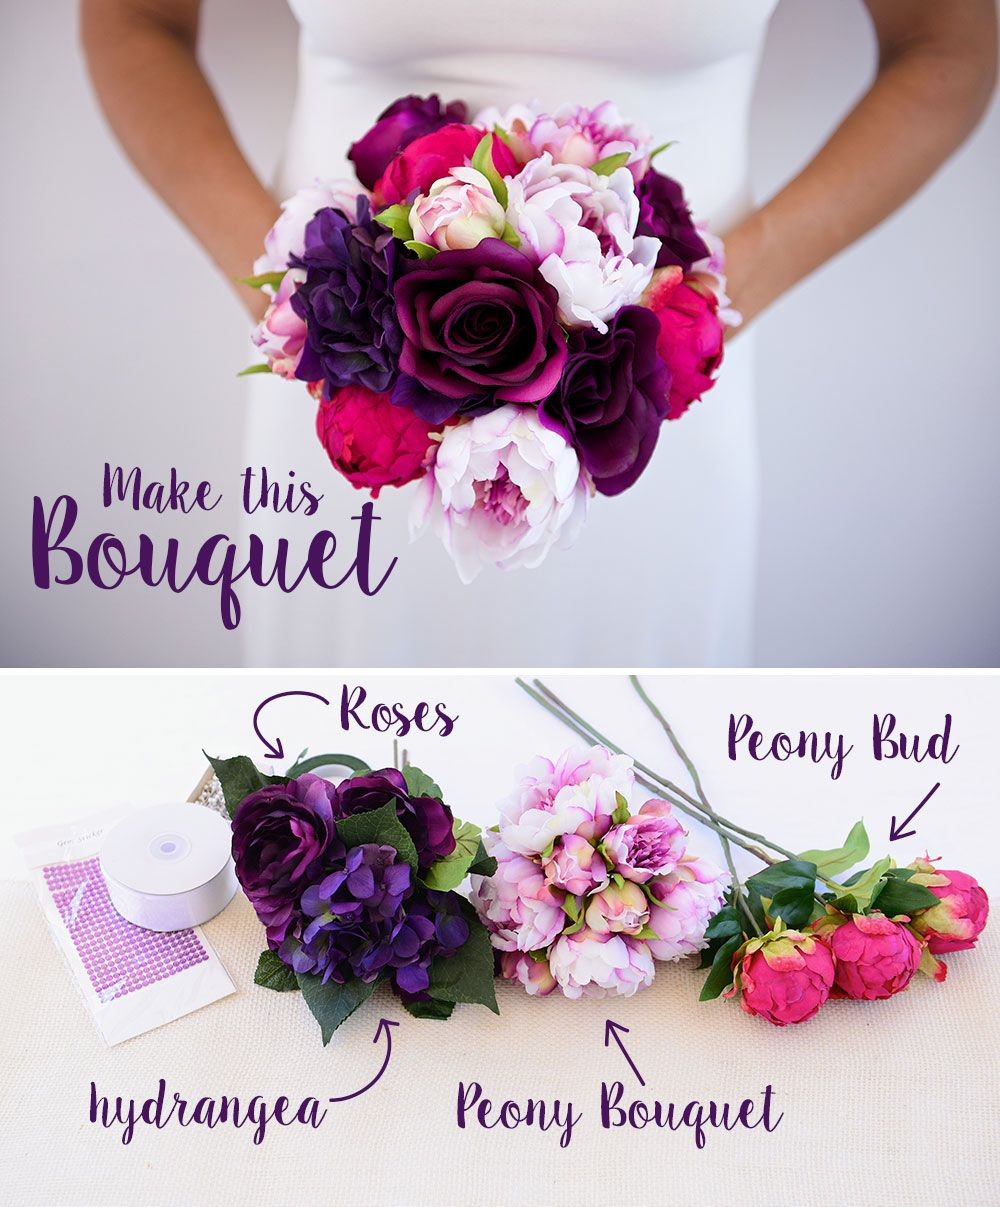 Make Silk Wedding Flowers: Learn How To Make This Silk Flower Bouquet With A Simple